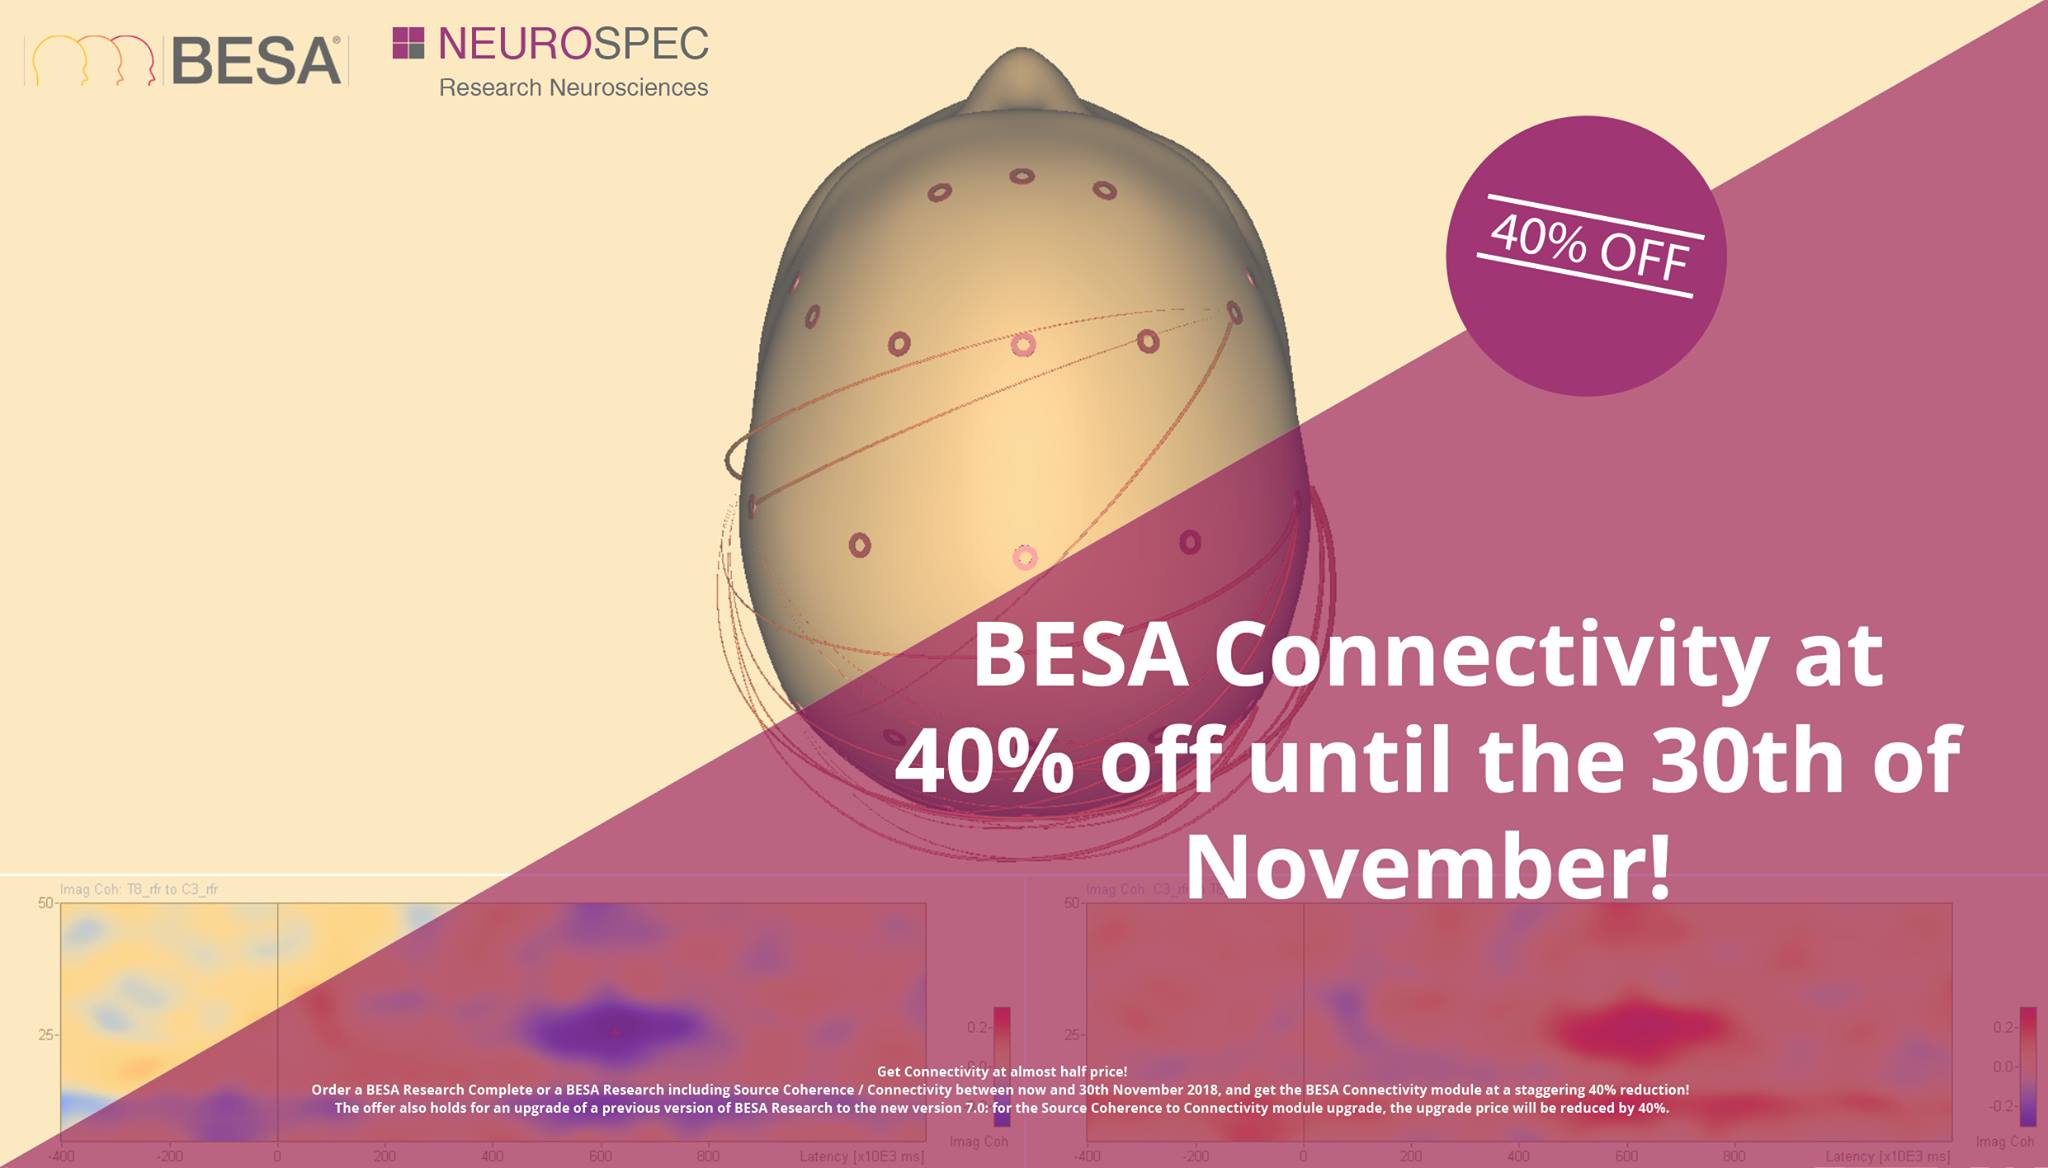 BESA Connectivity Sale - 40% off!